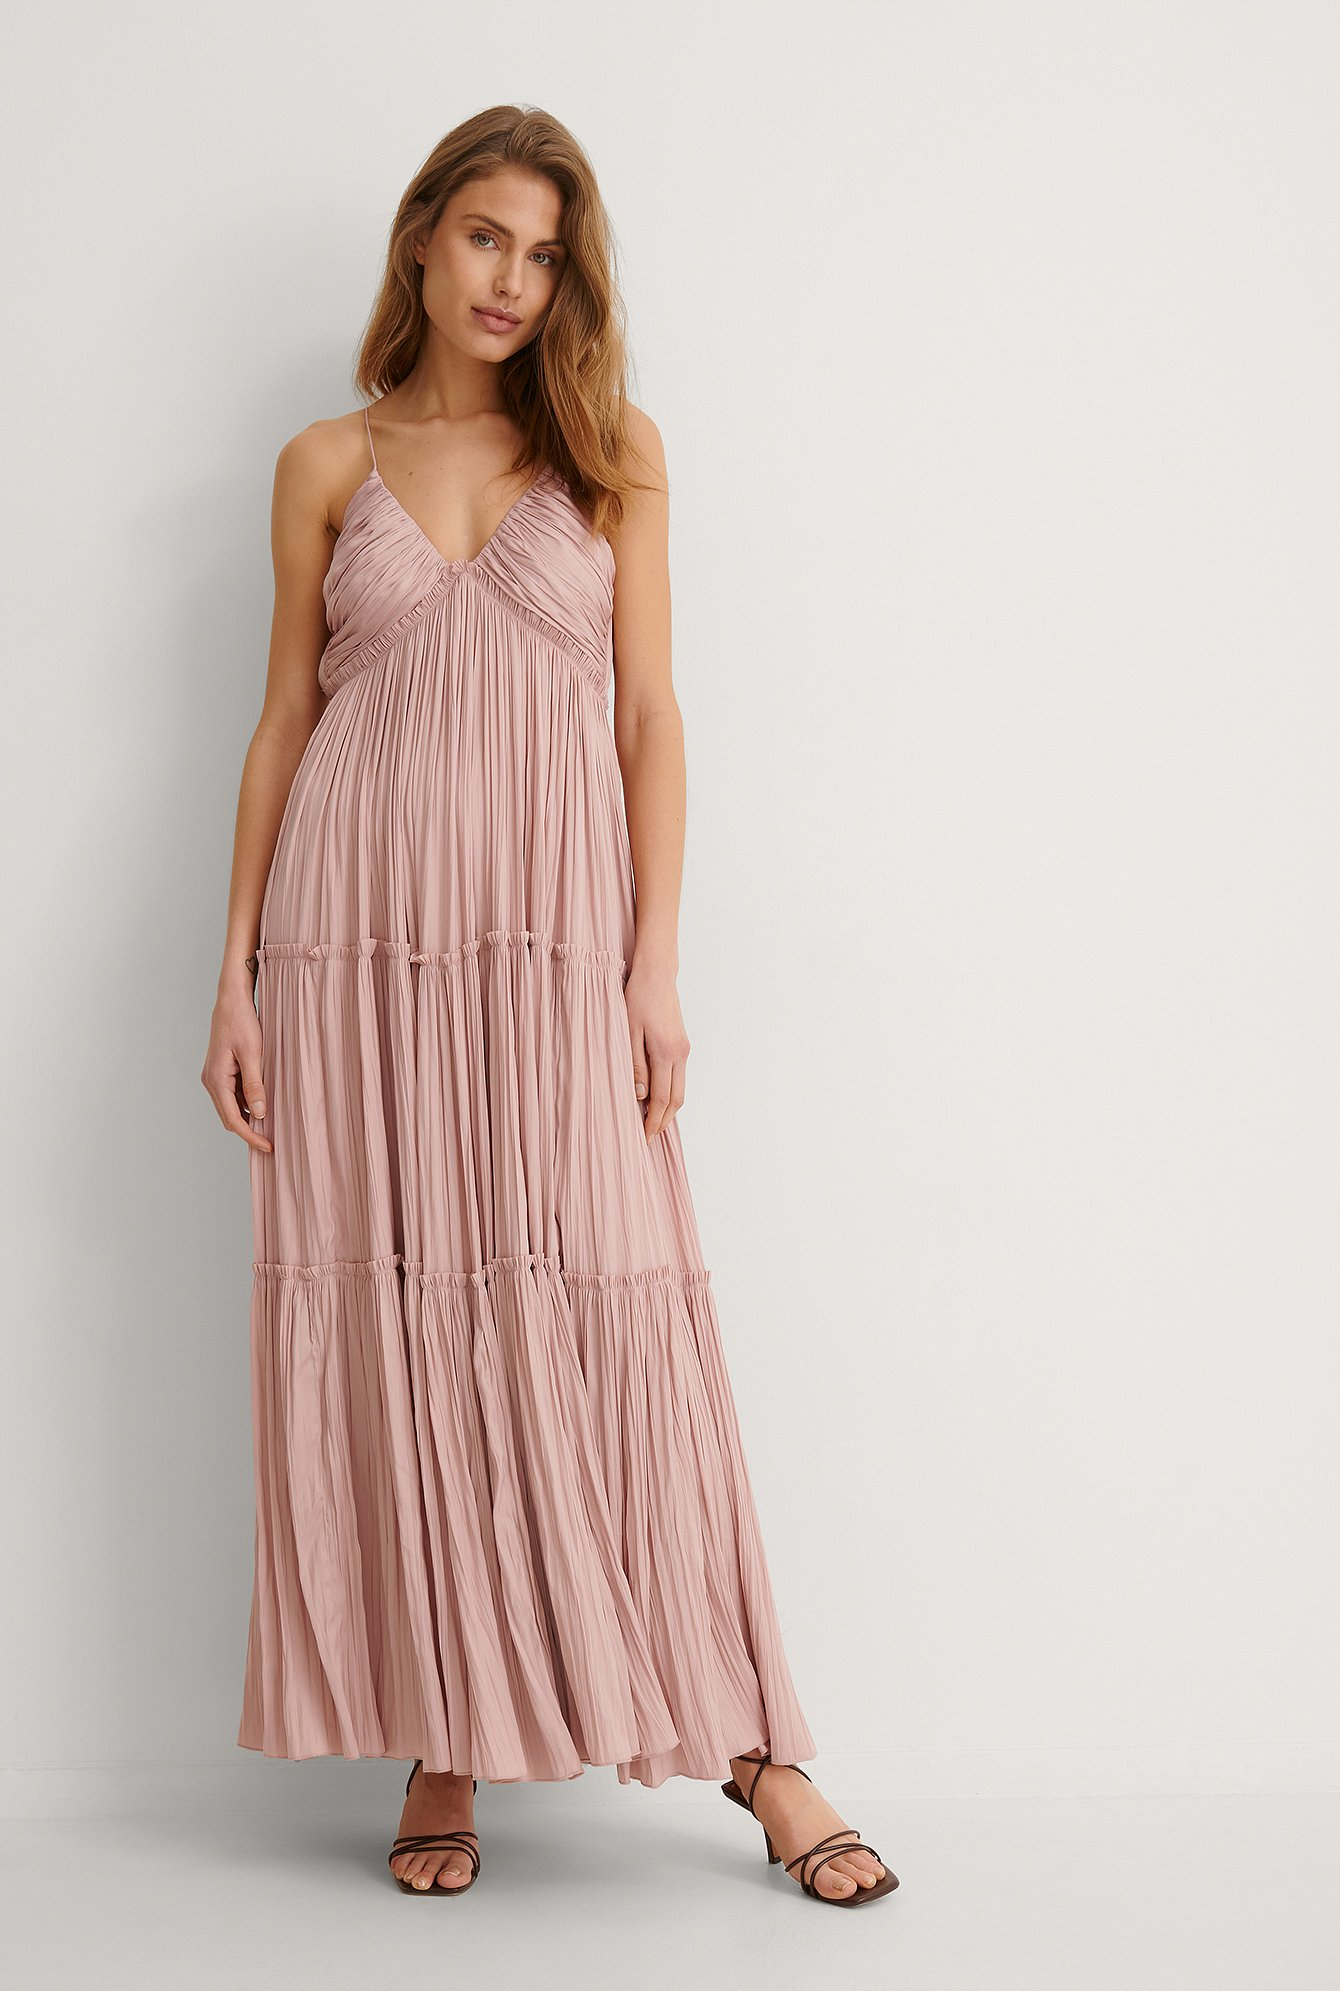 Dusty Pink Flowy Maxi Dress